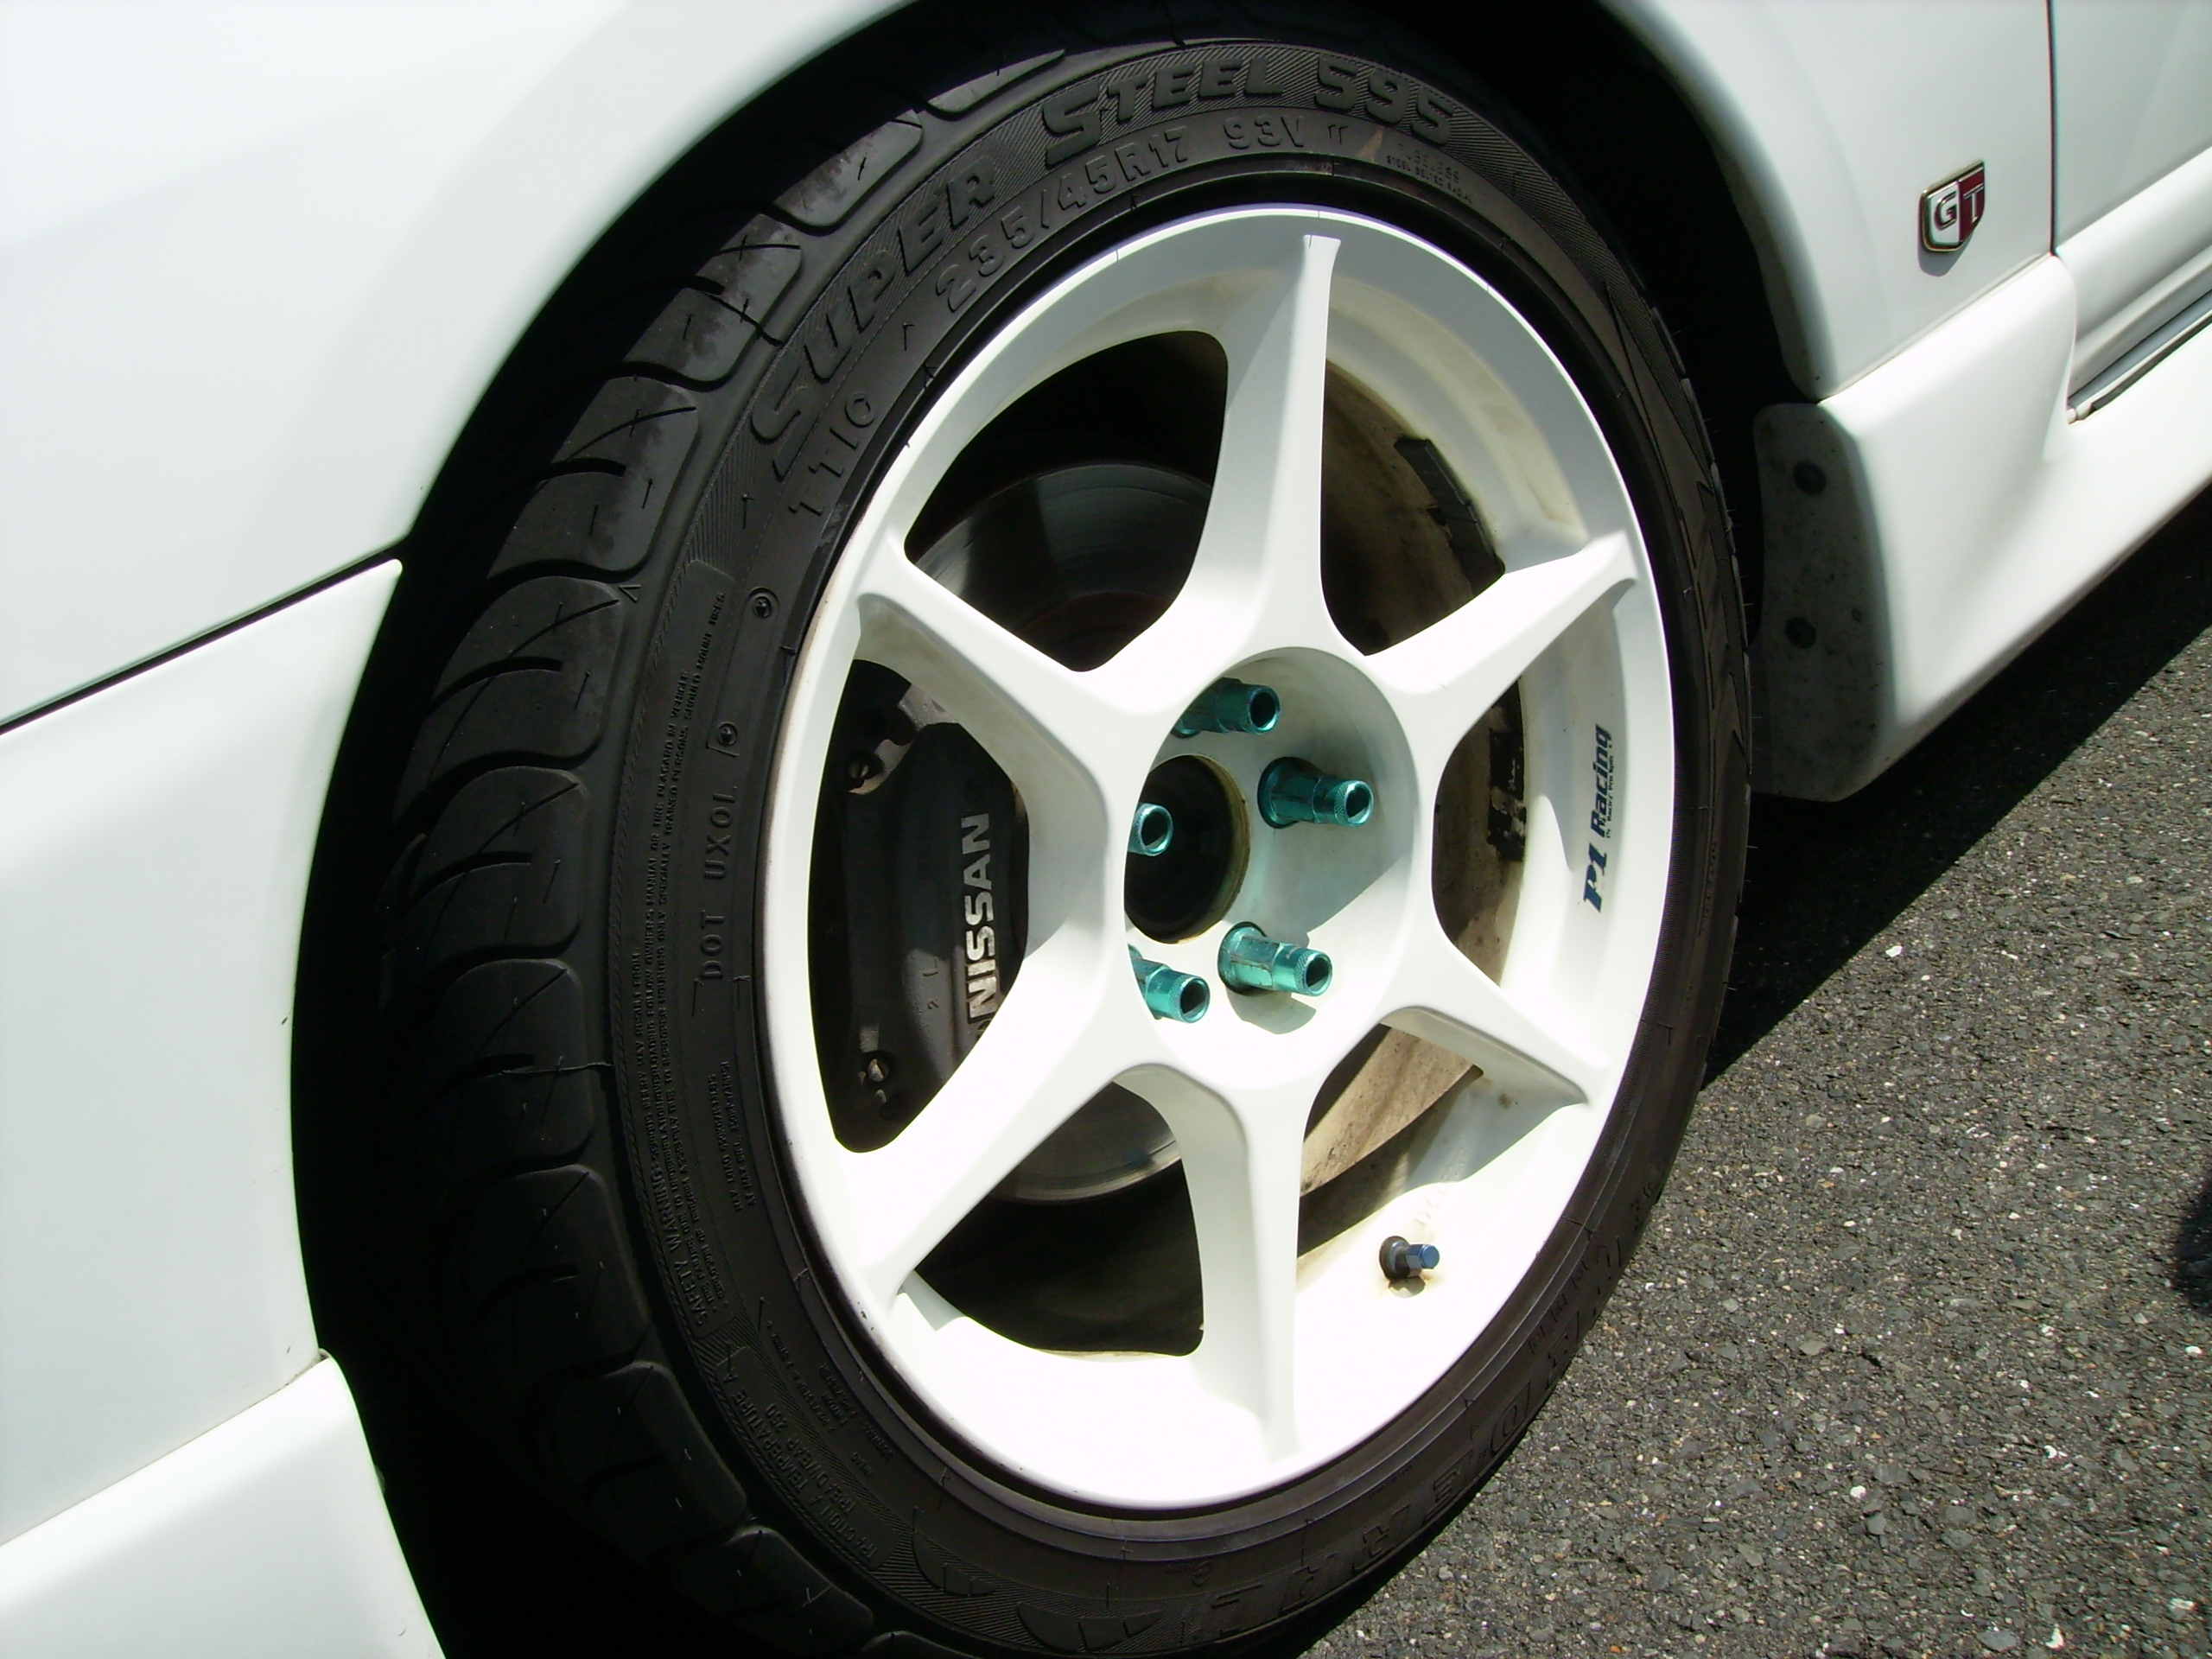 1996 Nissan Skyline R33 Gts-t wheel